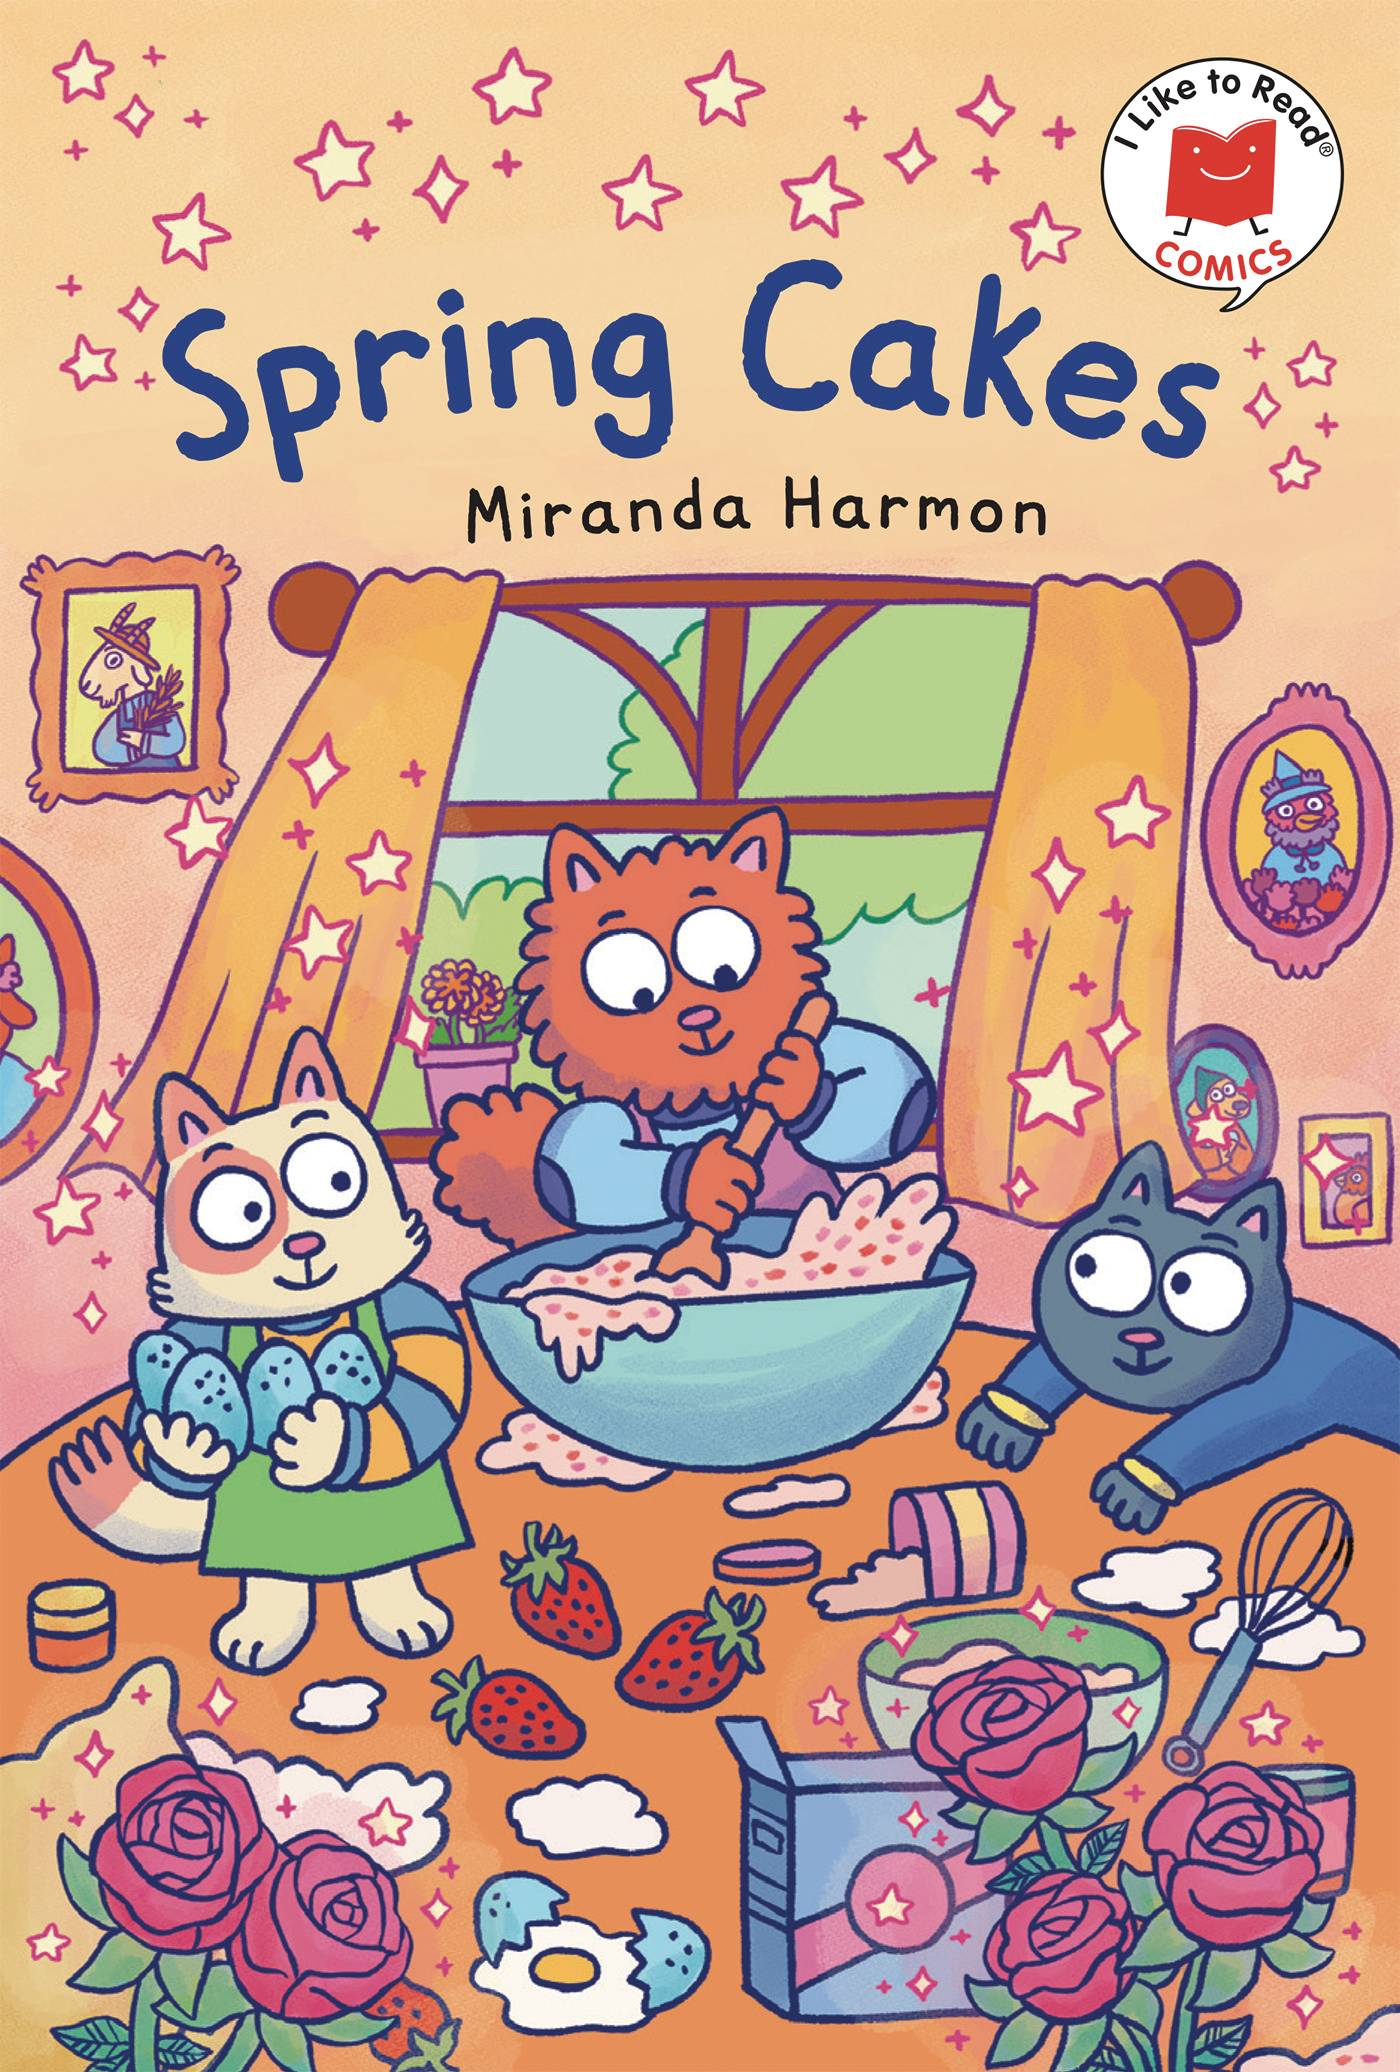 I LIKE TO READ COMICS GN SPRING CAKES